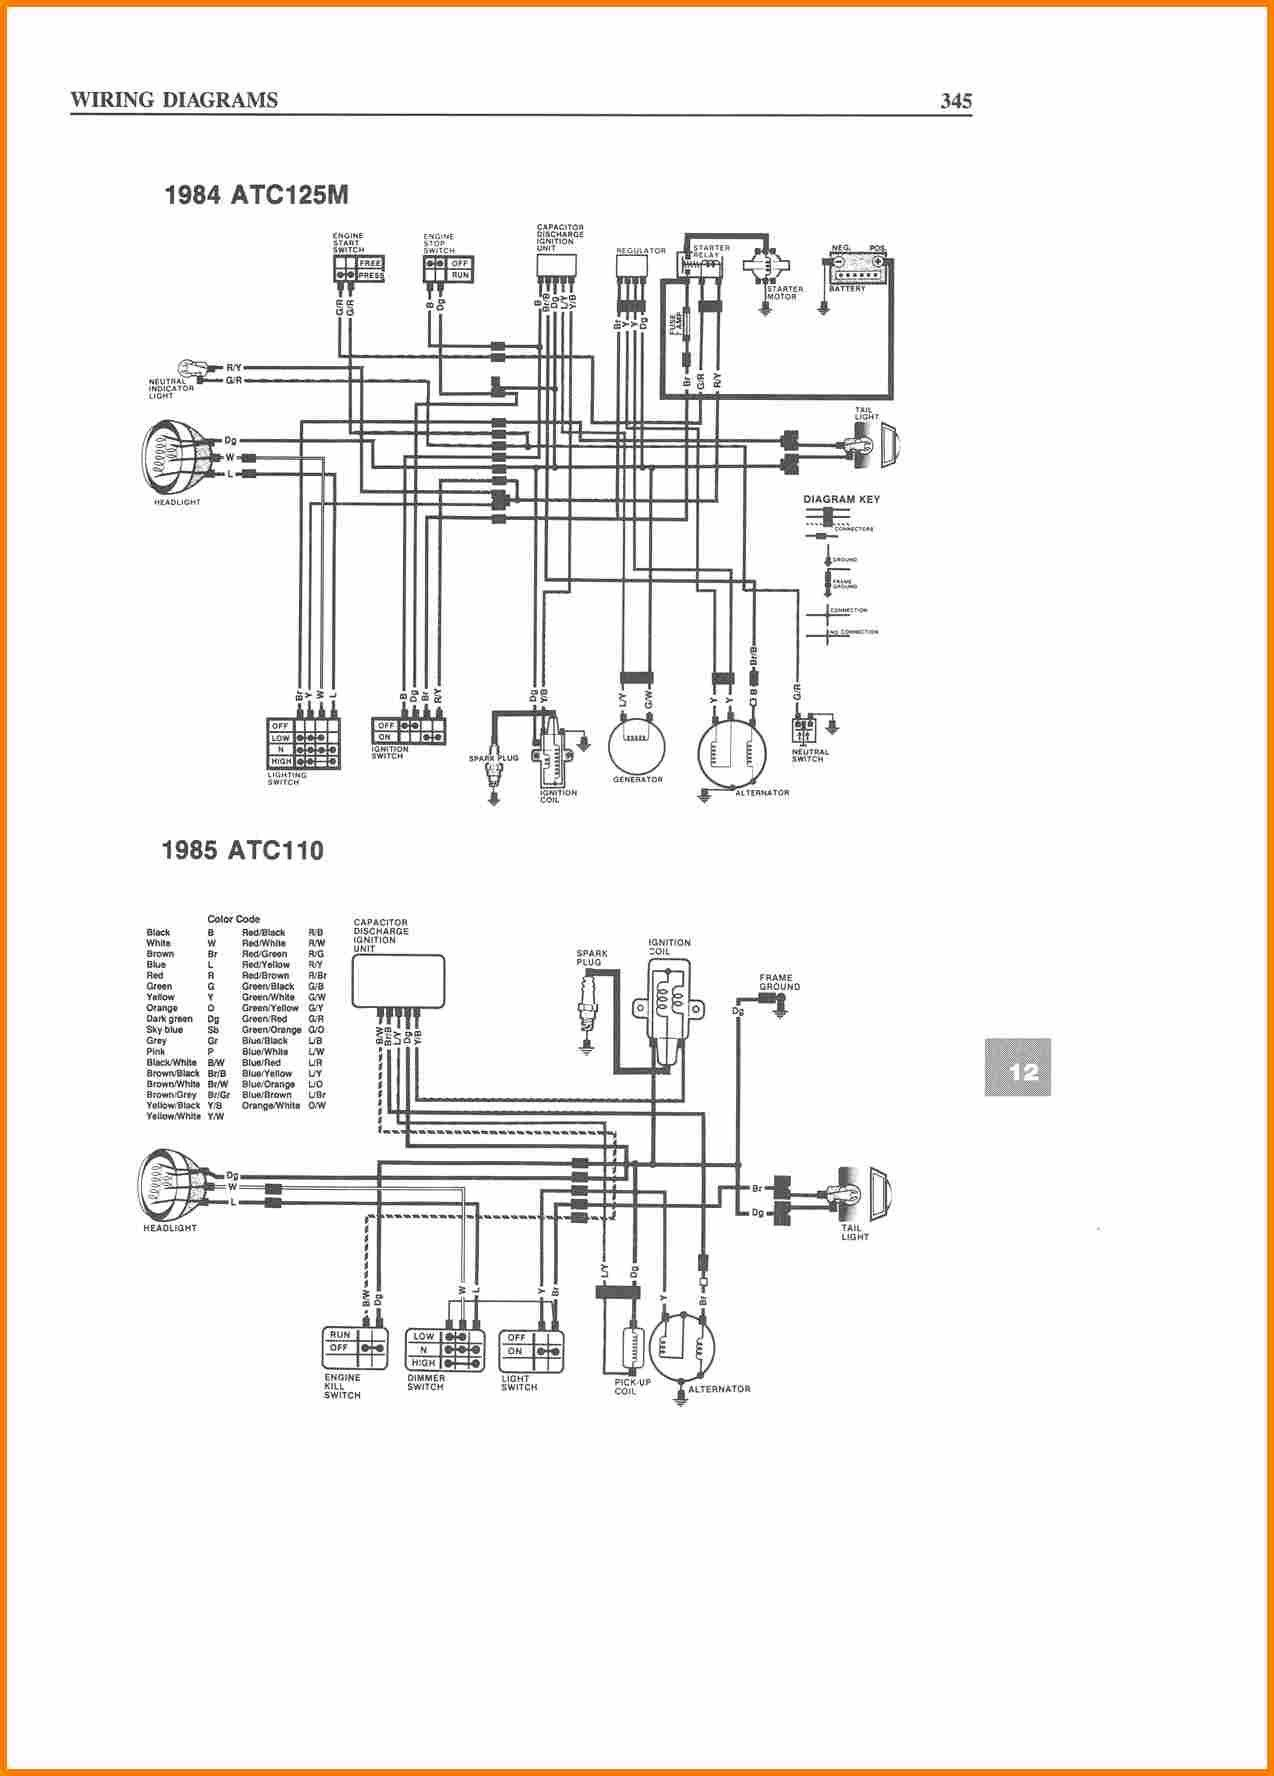 baja motorsports yg6 wiring harness baja sc50 wiring harness wiring diagram megabaja 50 scooter wiring diagram wiring diagram database baja sc50 [ 1274 x 1776 Pixel ]